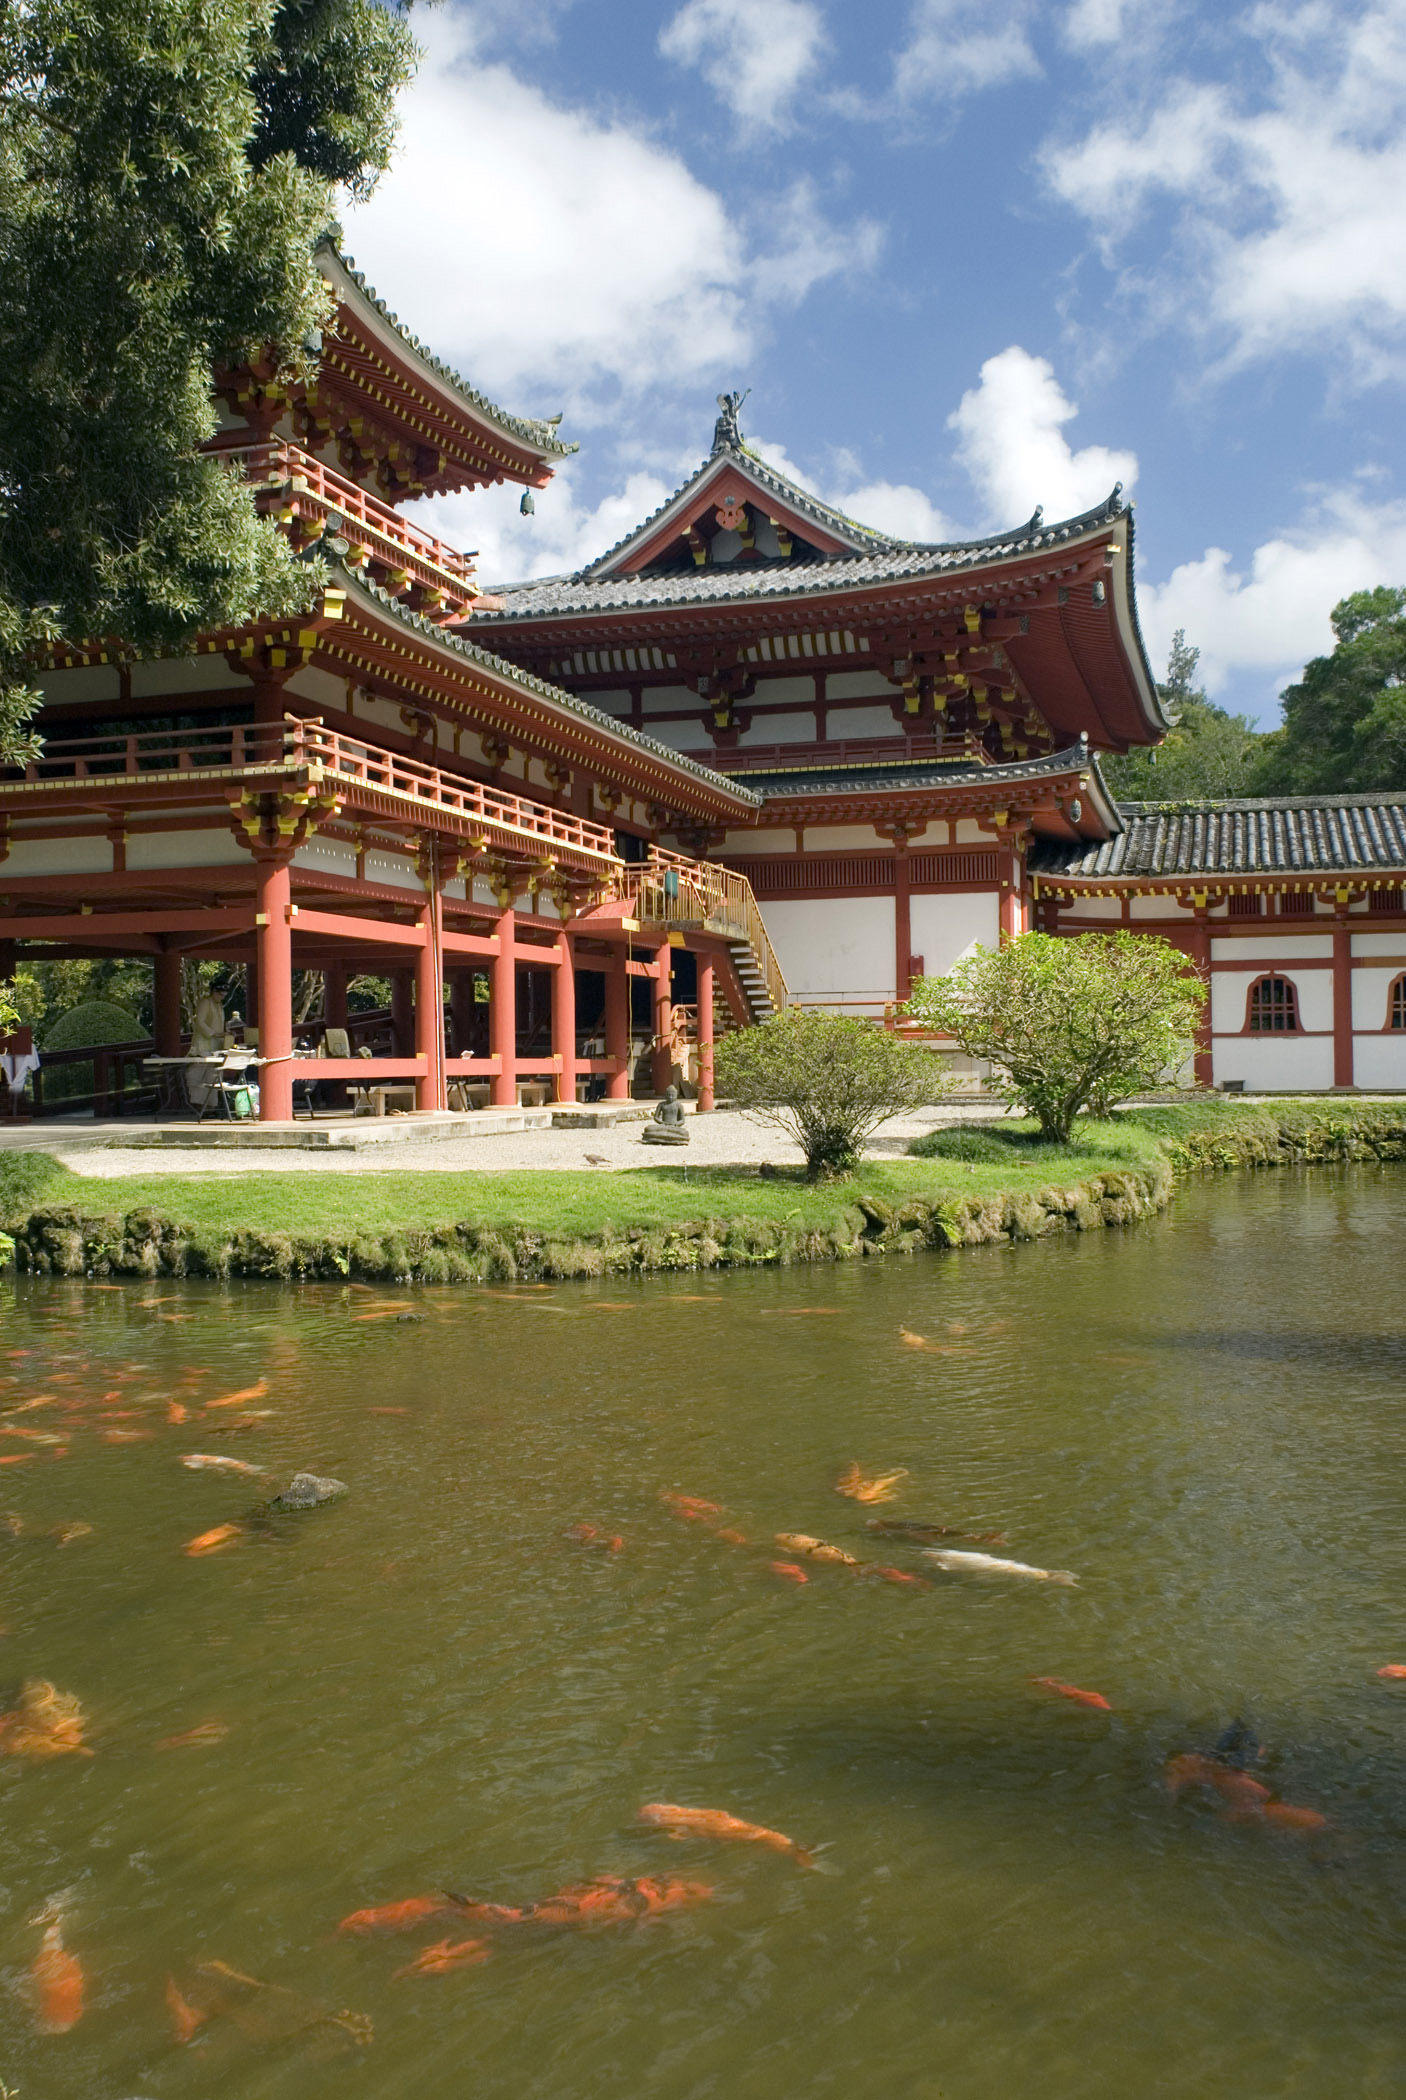 Beautiful Byodo In Buddhist Temple with Koi Fishes in Front Garden. Located at Hawaii